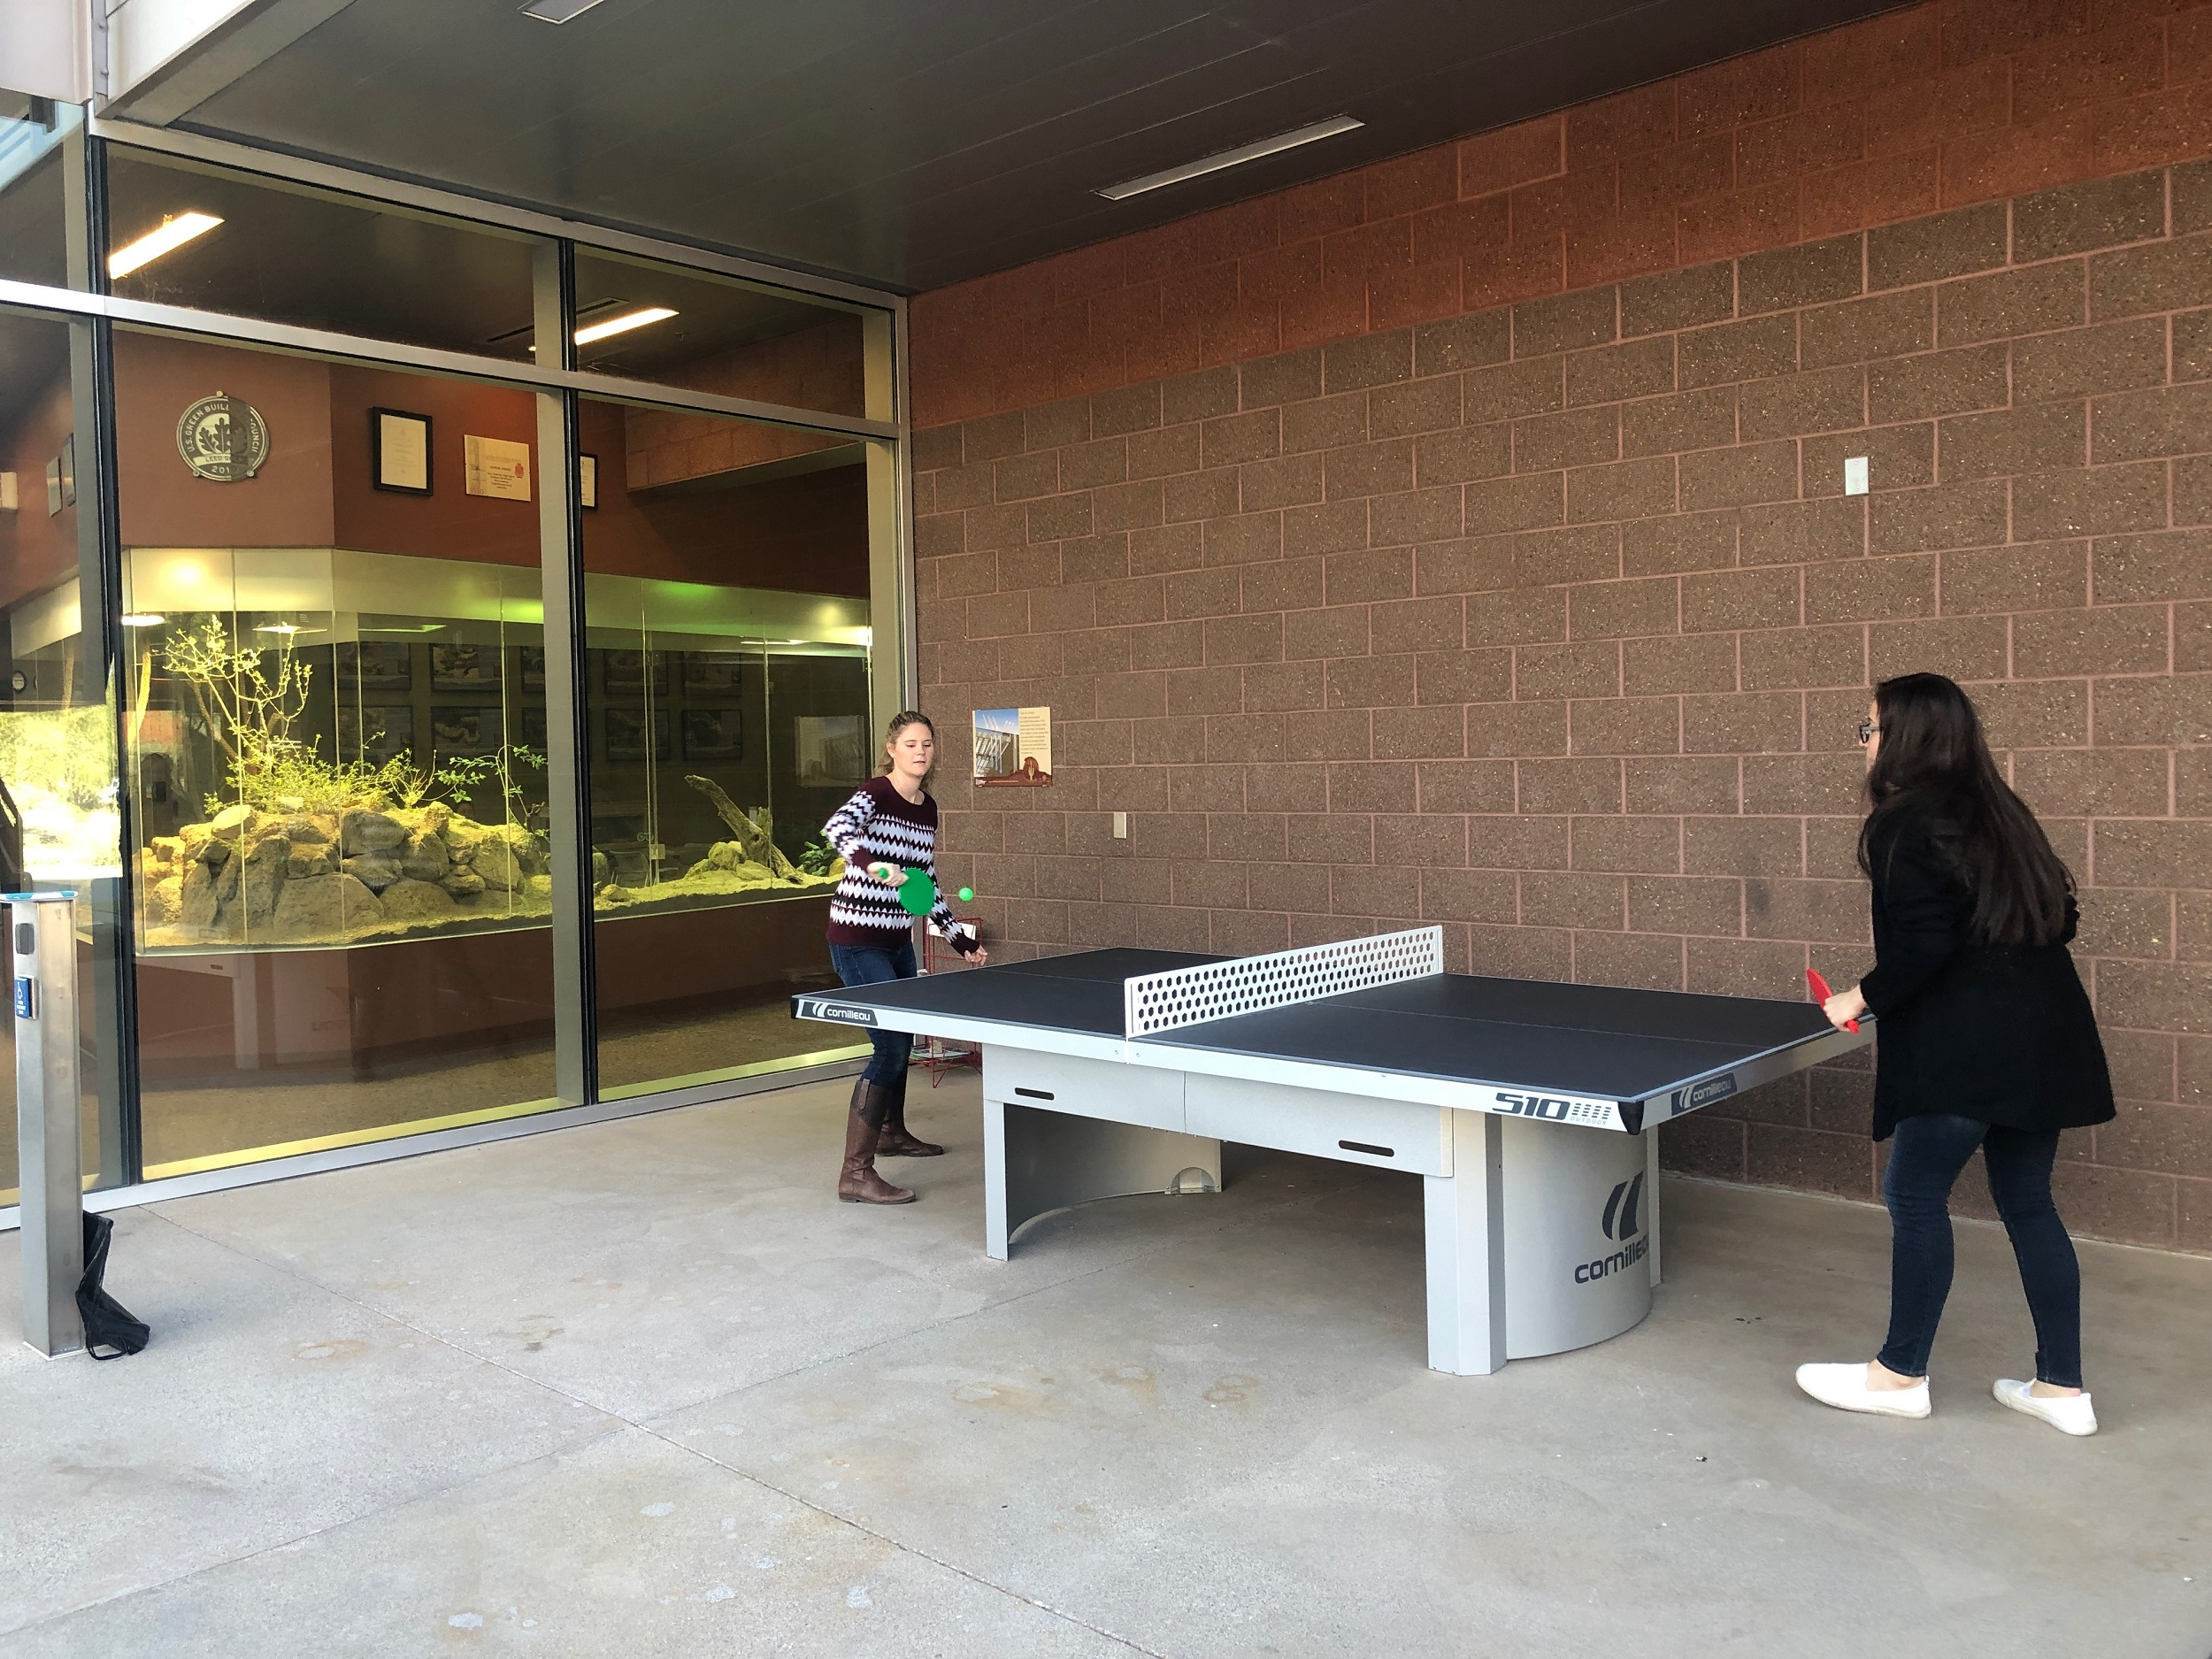 cornilleau 510 ping pong community college